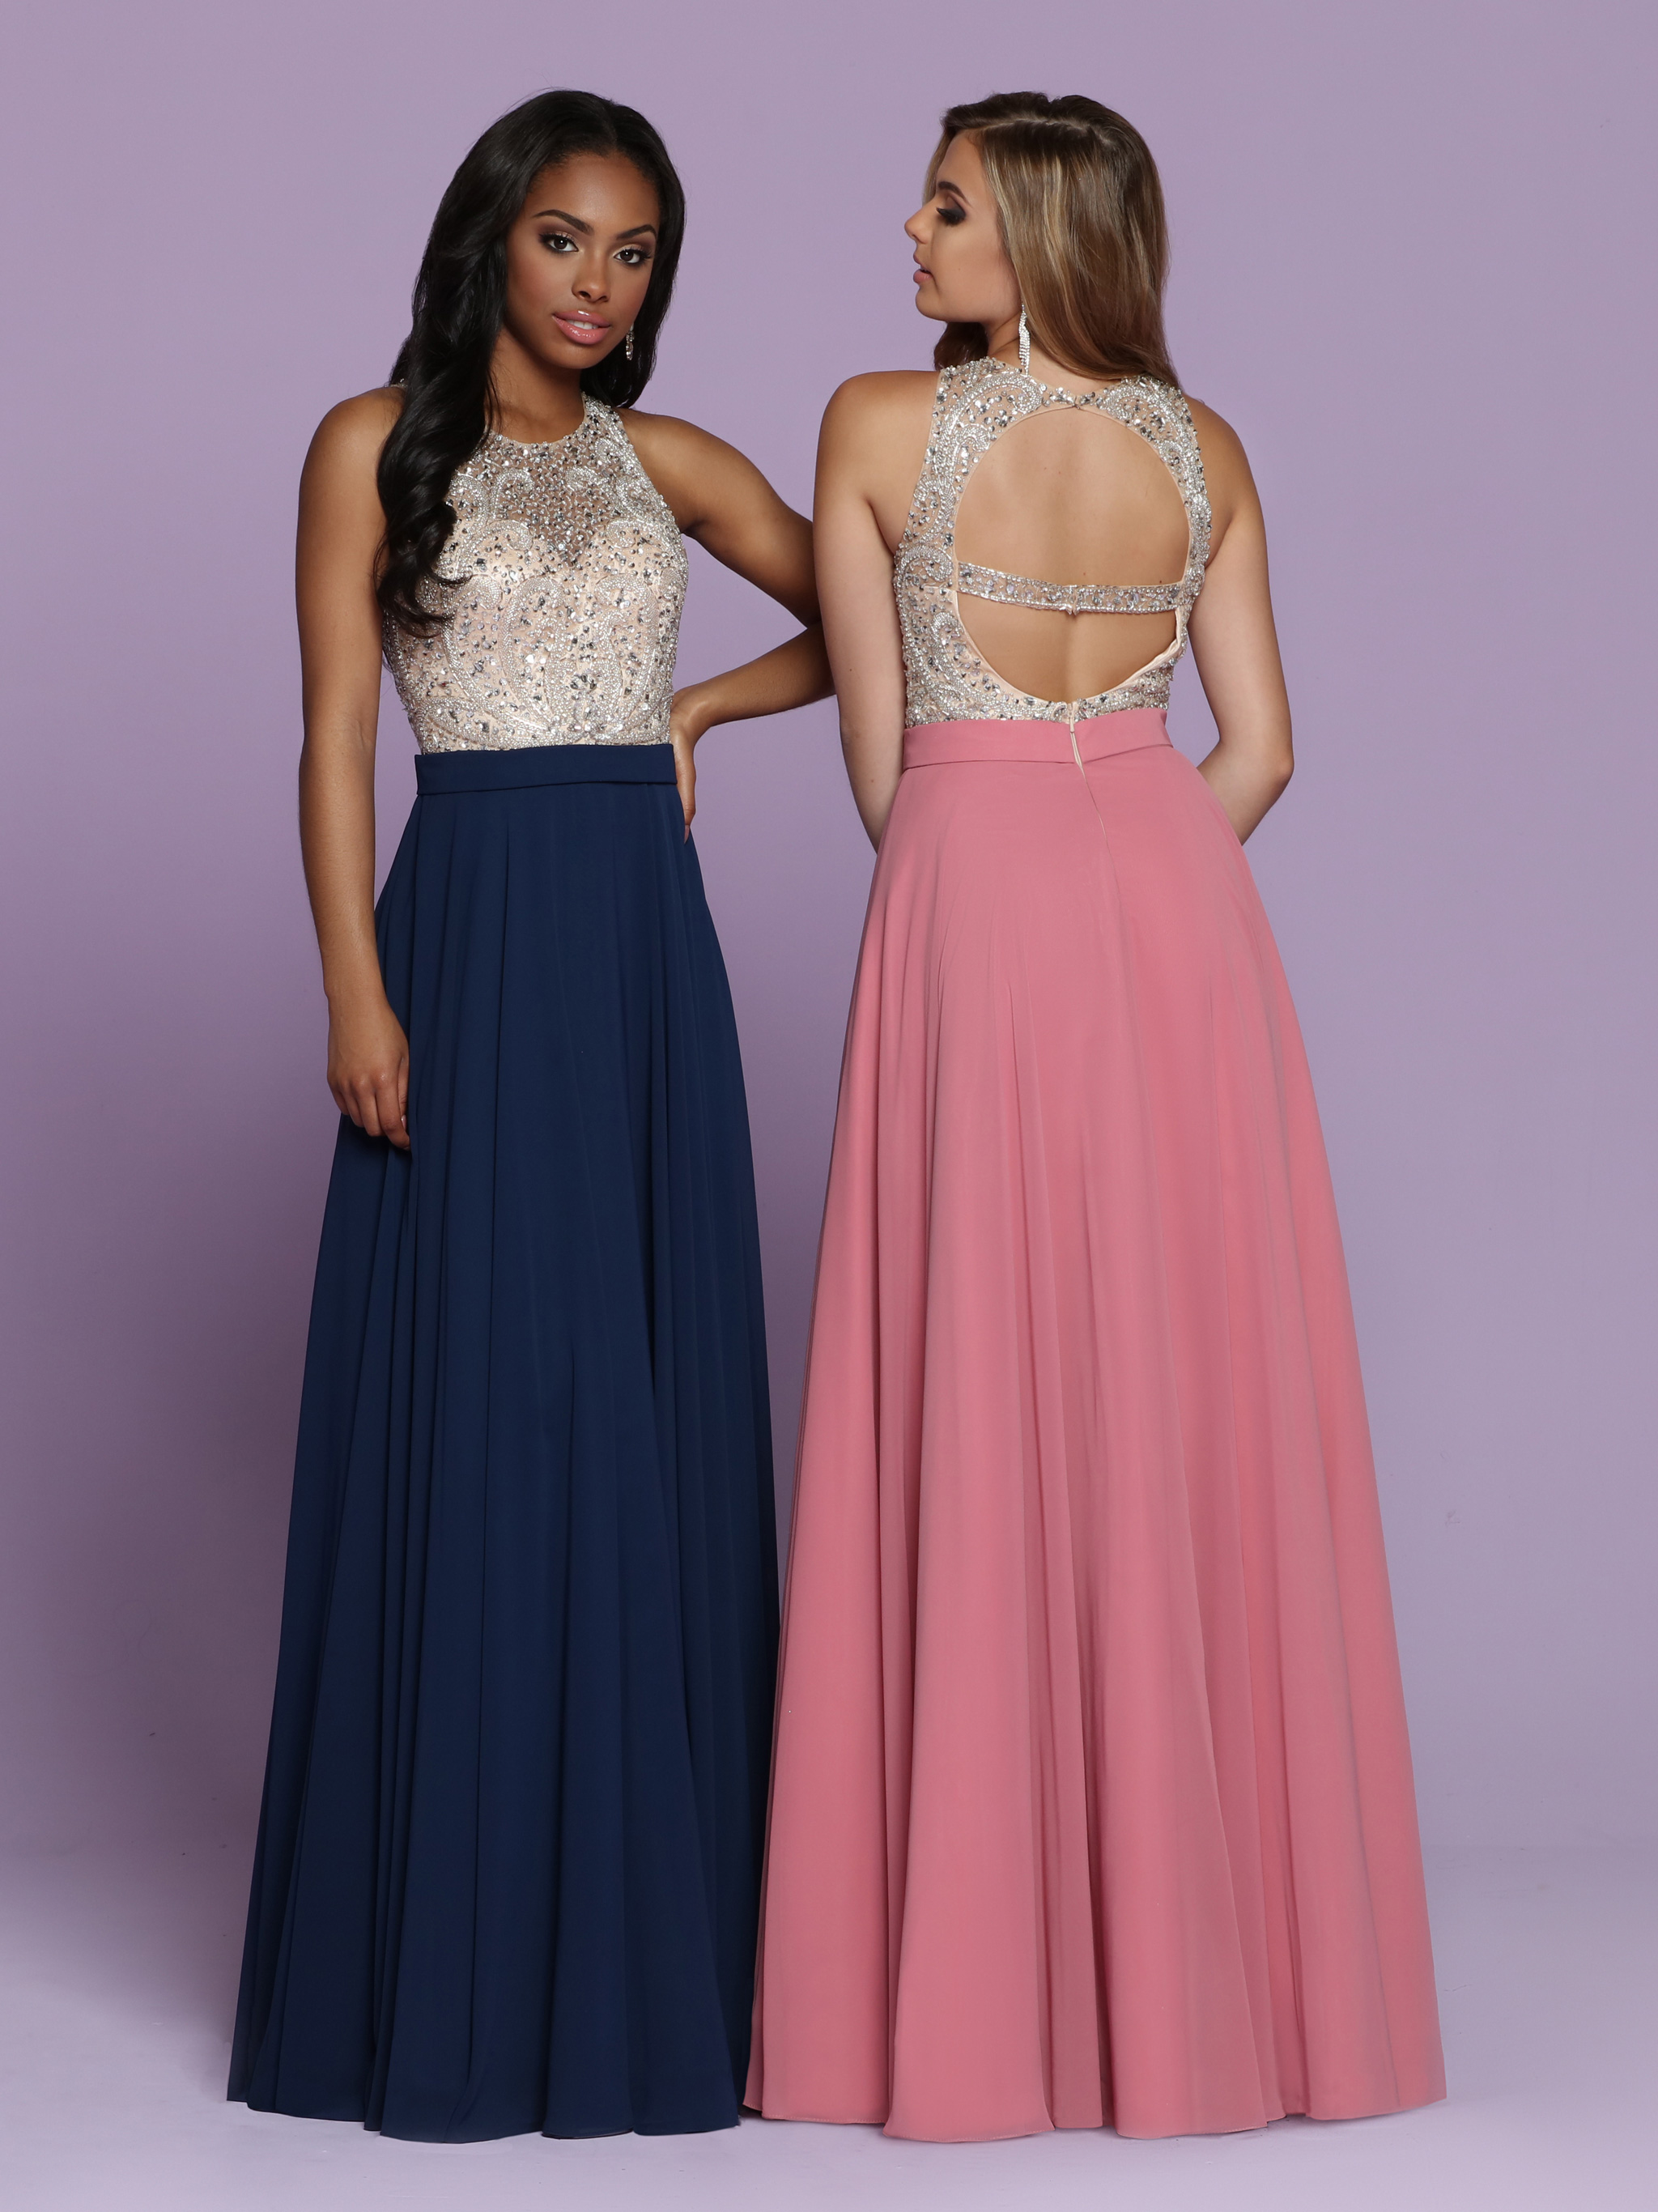 Image showing back view of style #72131